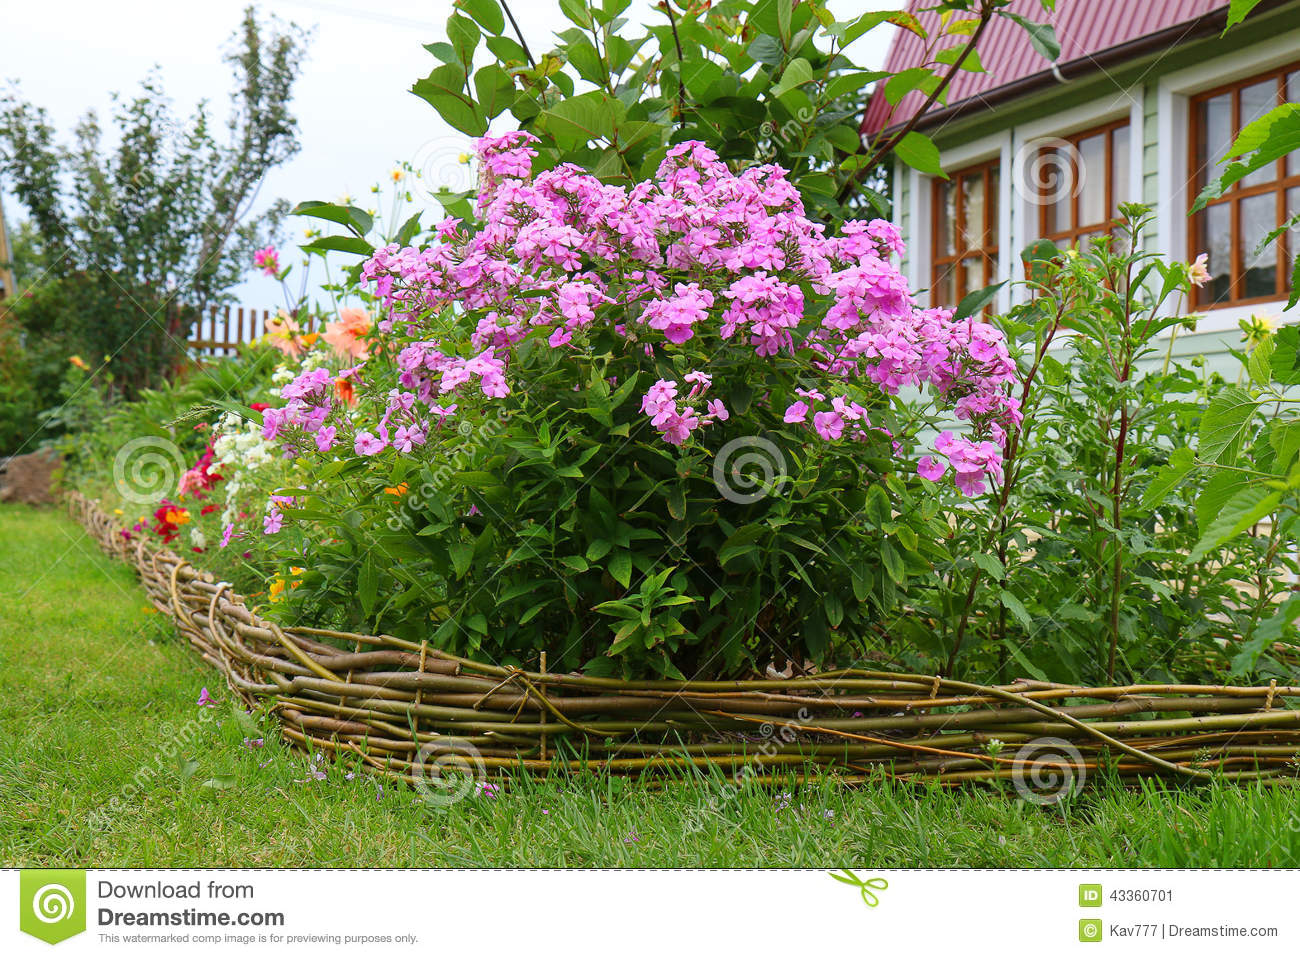 phlox paniculata in bloom stock image image of outdoor 43360701. Black Bedroom Furniture Sets. Home Design Ideas